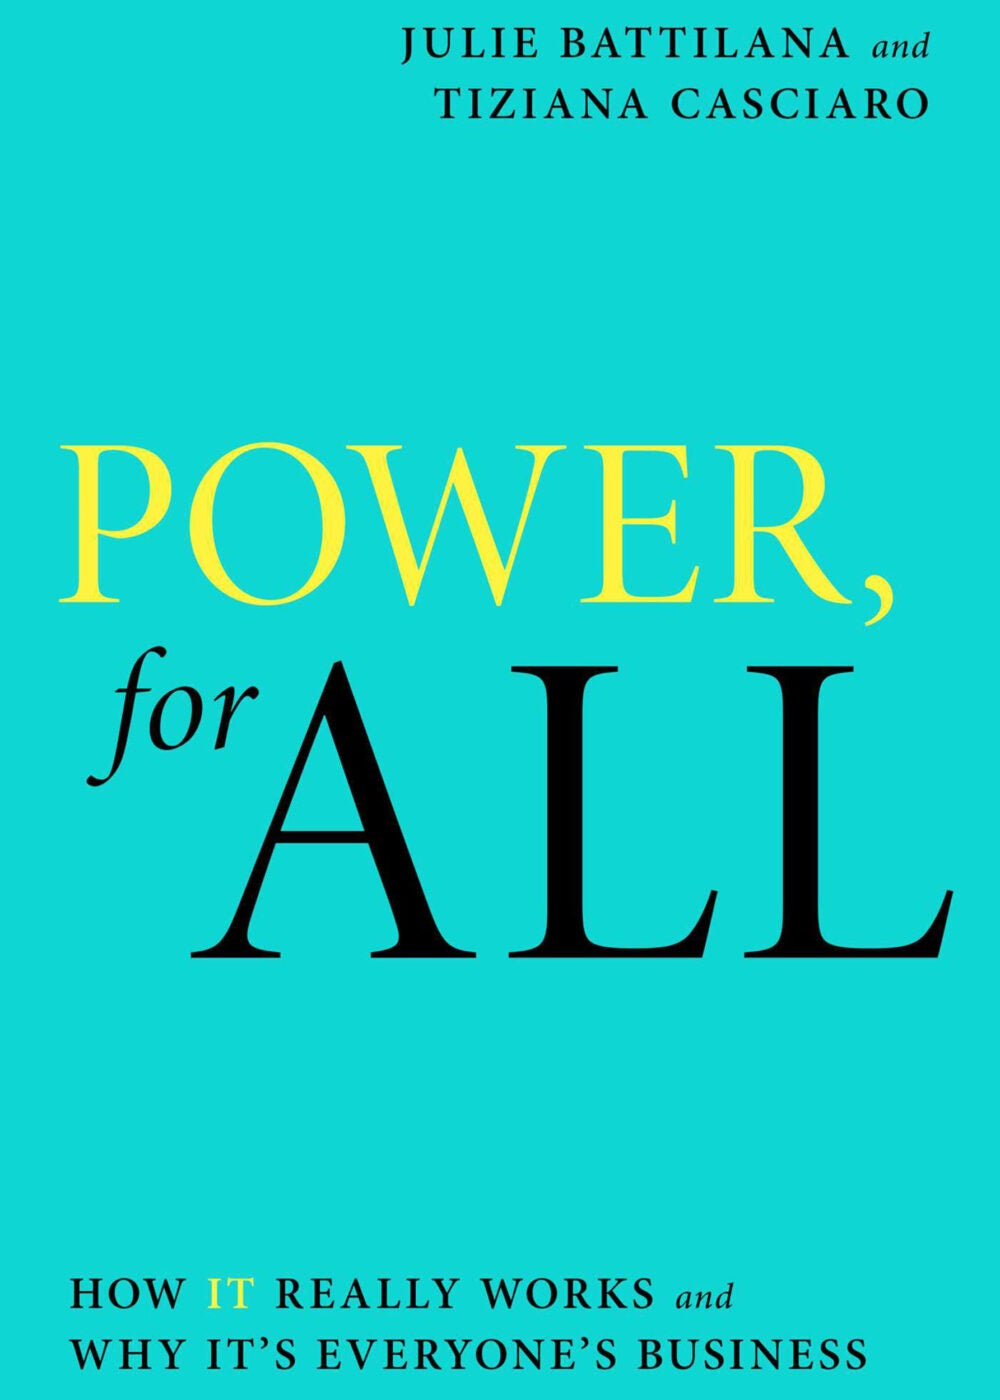 Power, for All book cover.